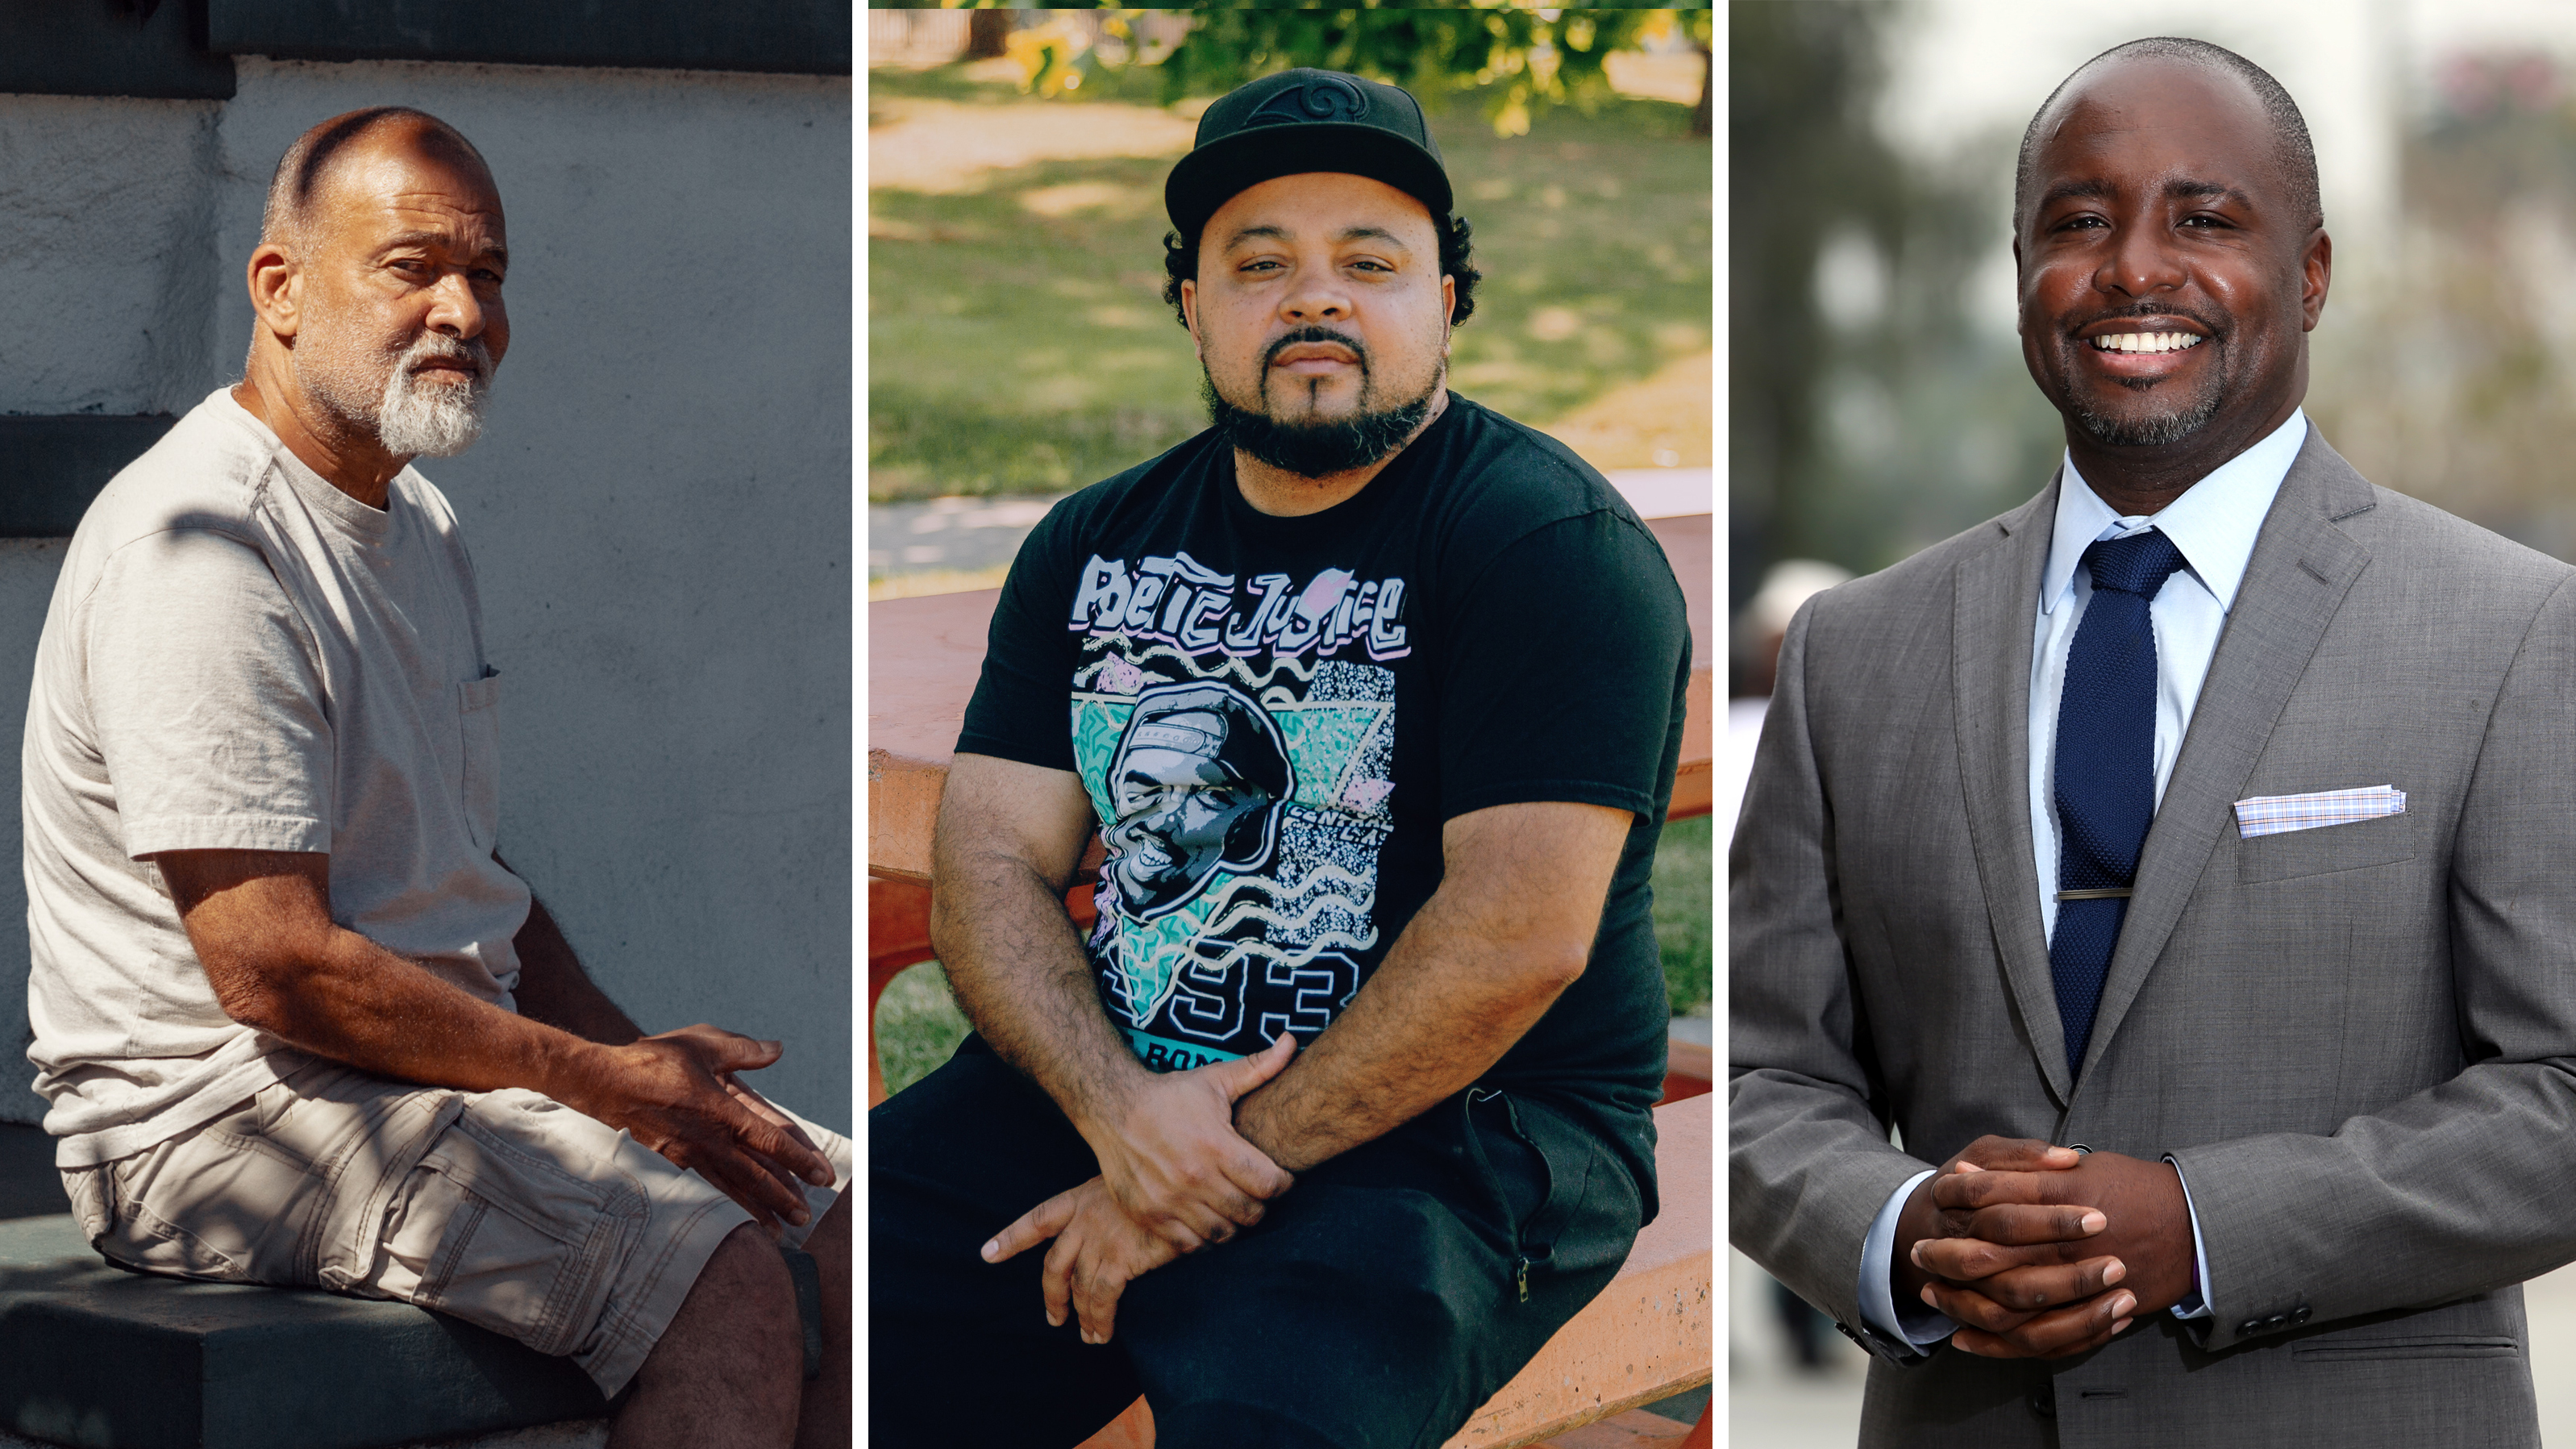 Bruce Patton (left), Gilbert Johnson and Marqueece Harris-Dawson share their perspectives on living in South LA during the unrest of previous decades and today.